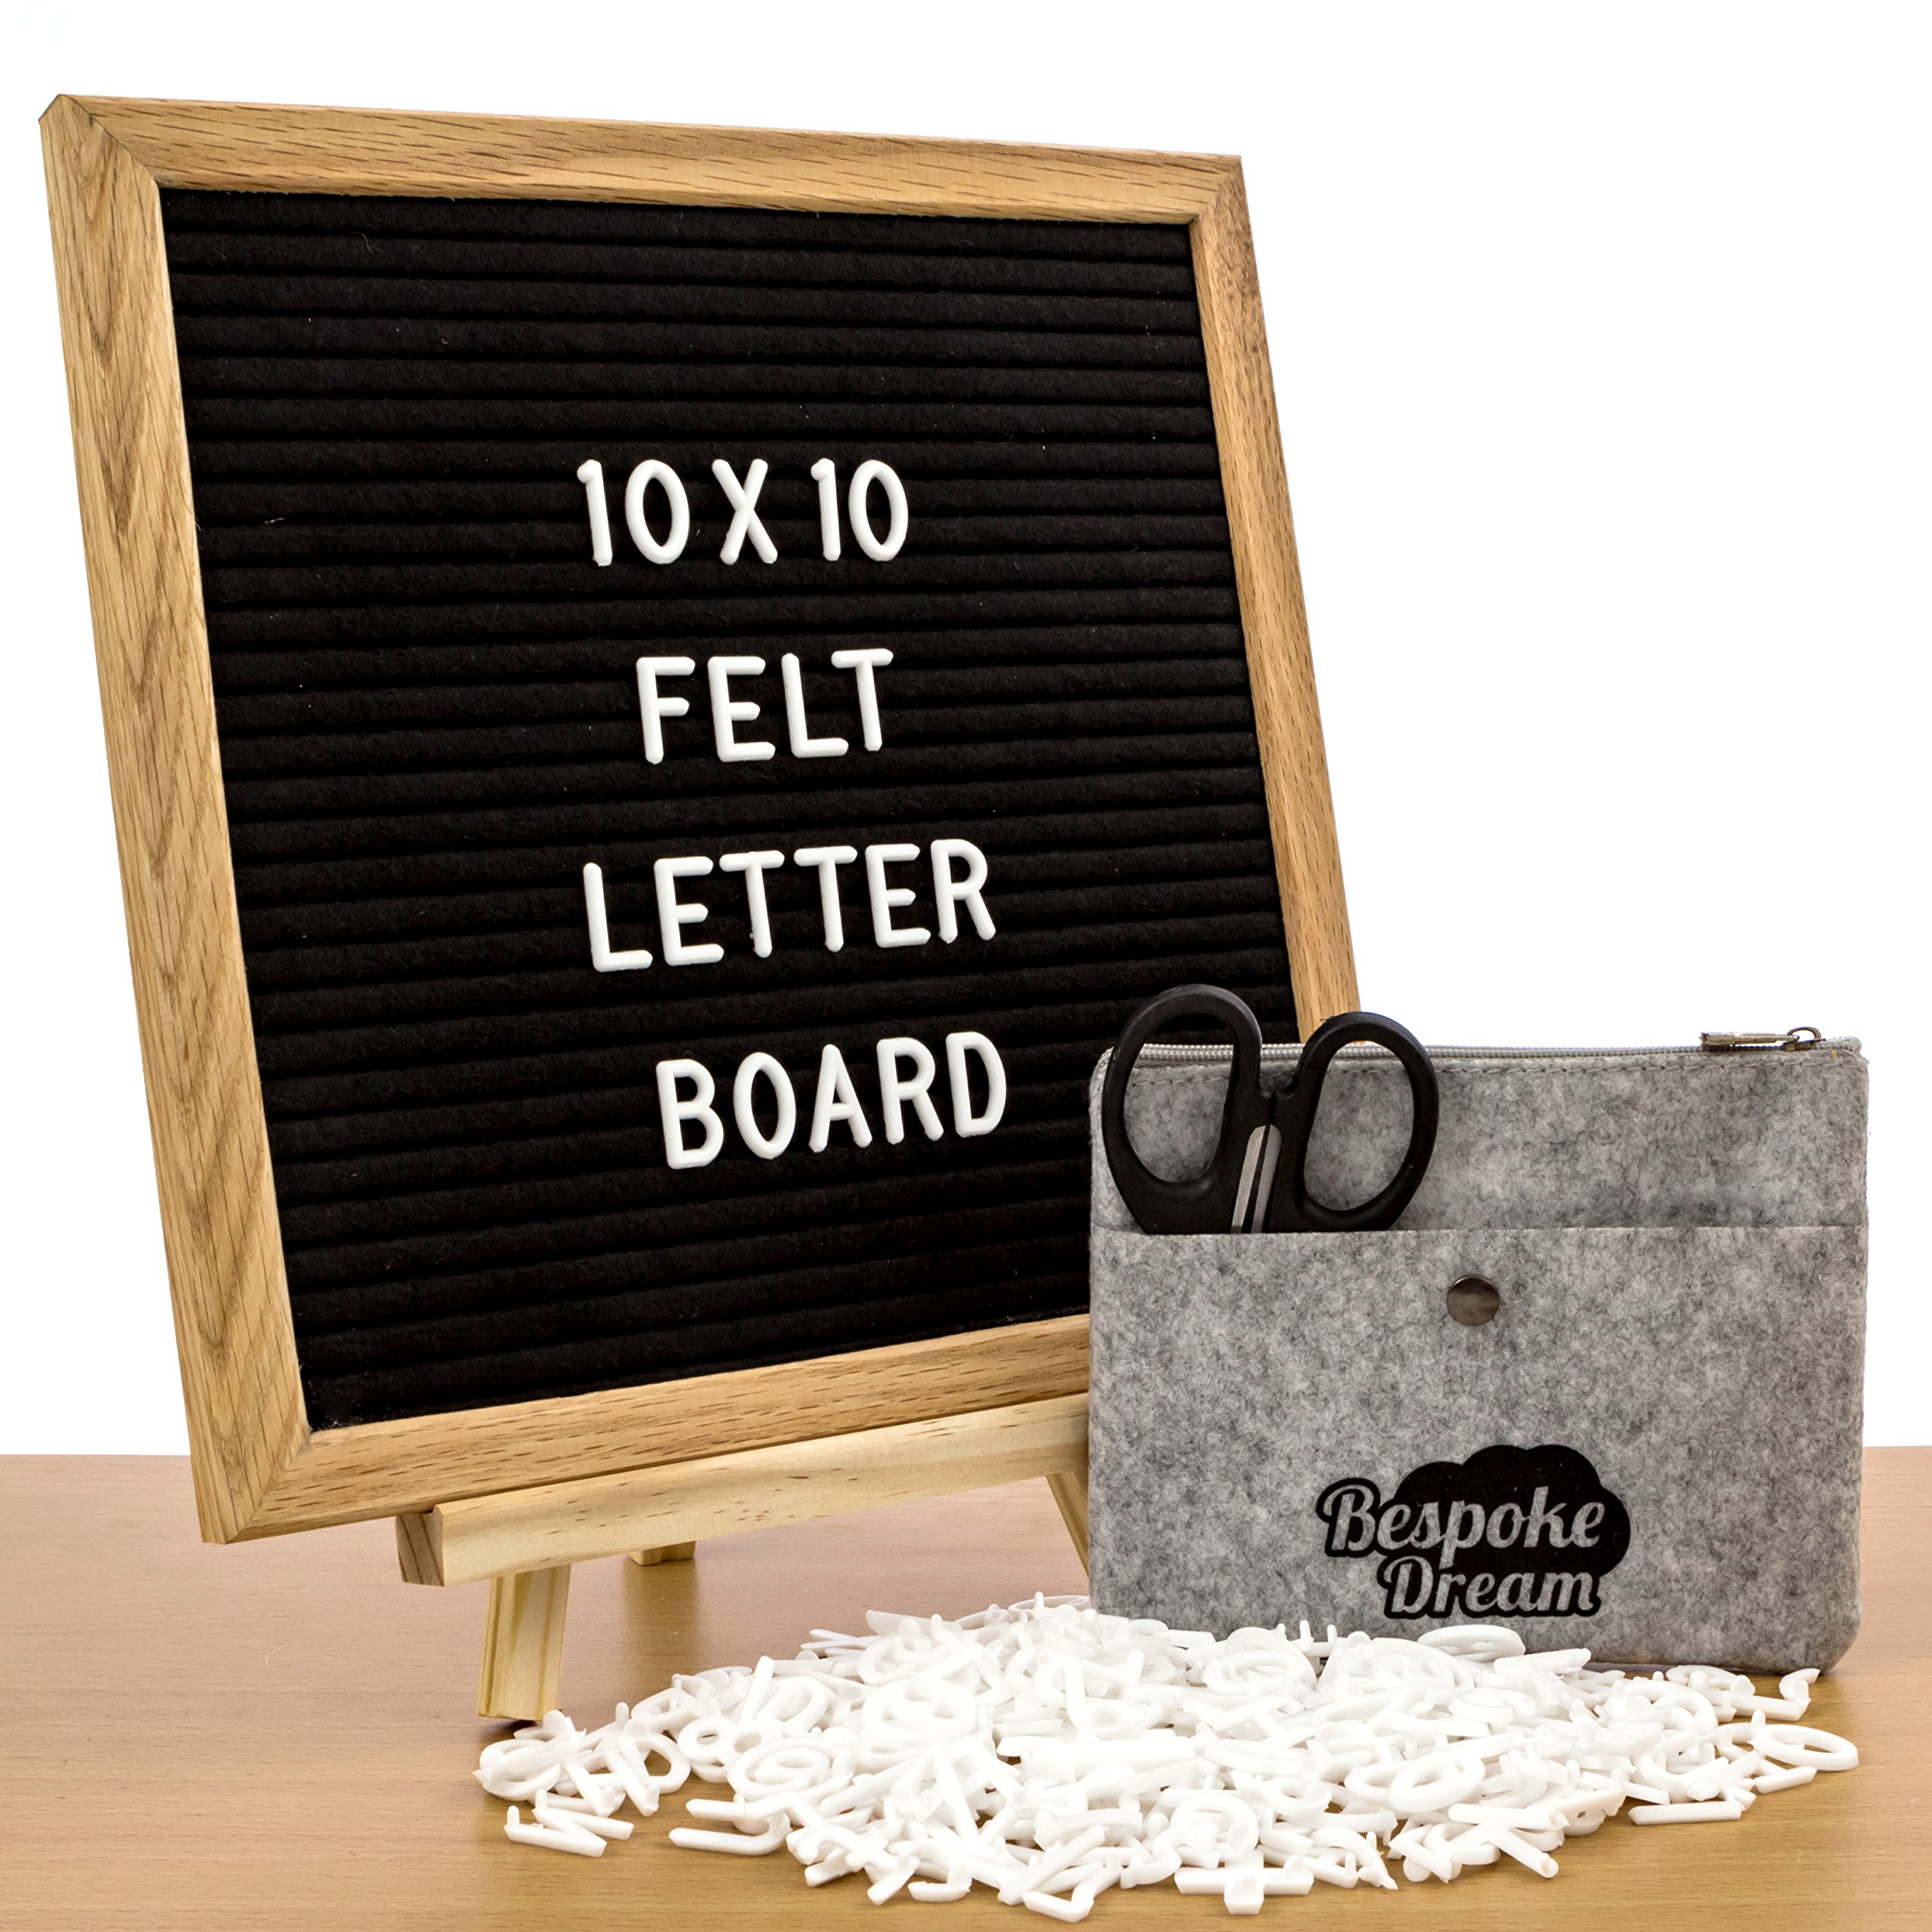 Premium Changeable Letter Board SET 10 x 10 Inches with Black Felt, Real Wood Frame with Wood Stand. 360 White Letters, Numbers, Emojis. BONUS Felt Storage Bag, Scissors, eBook of Motivational Quotes